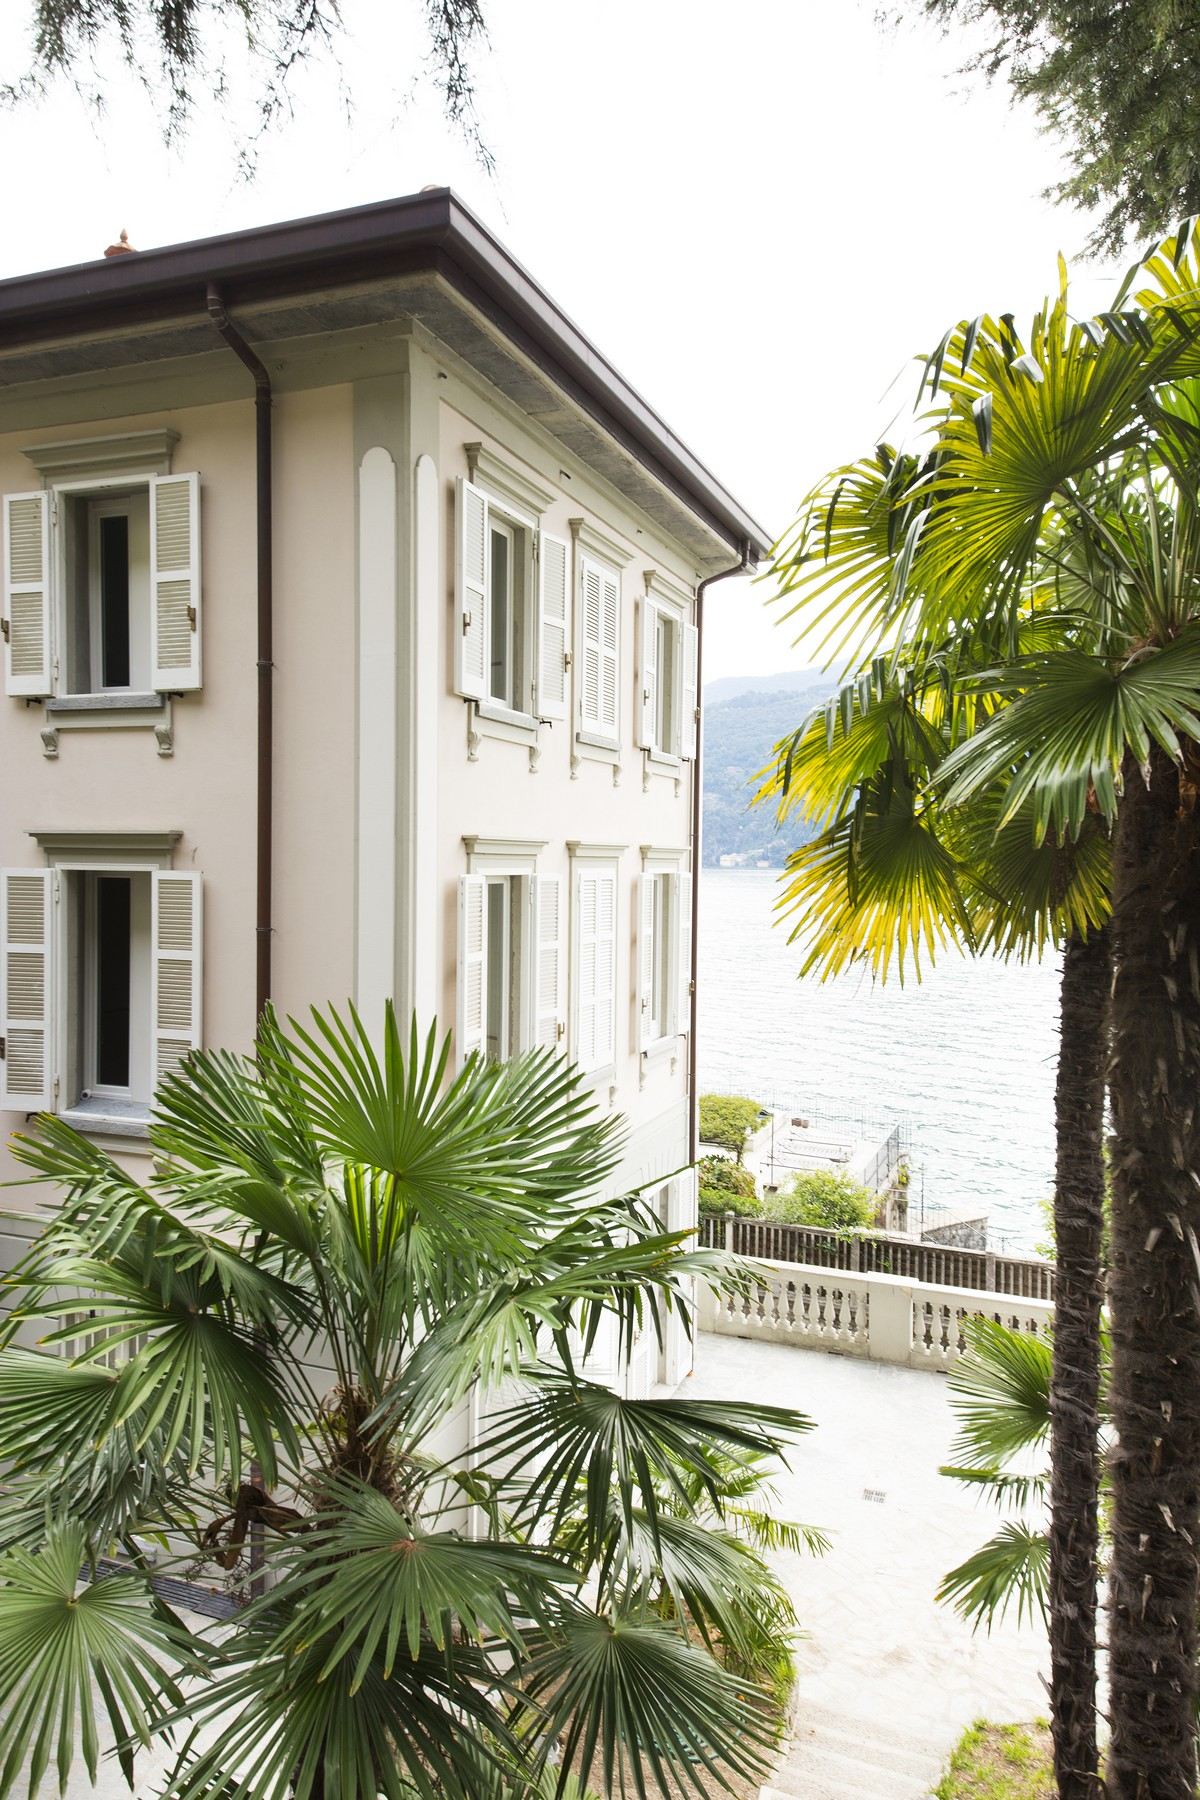 Single Family Home for Sale at Fantastic villa liberty pieds dans l'eau on Lake Como Via Regina Vecchia Carate Urio, Como 22010 Italy